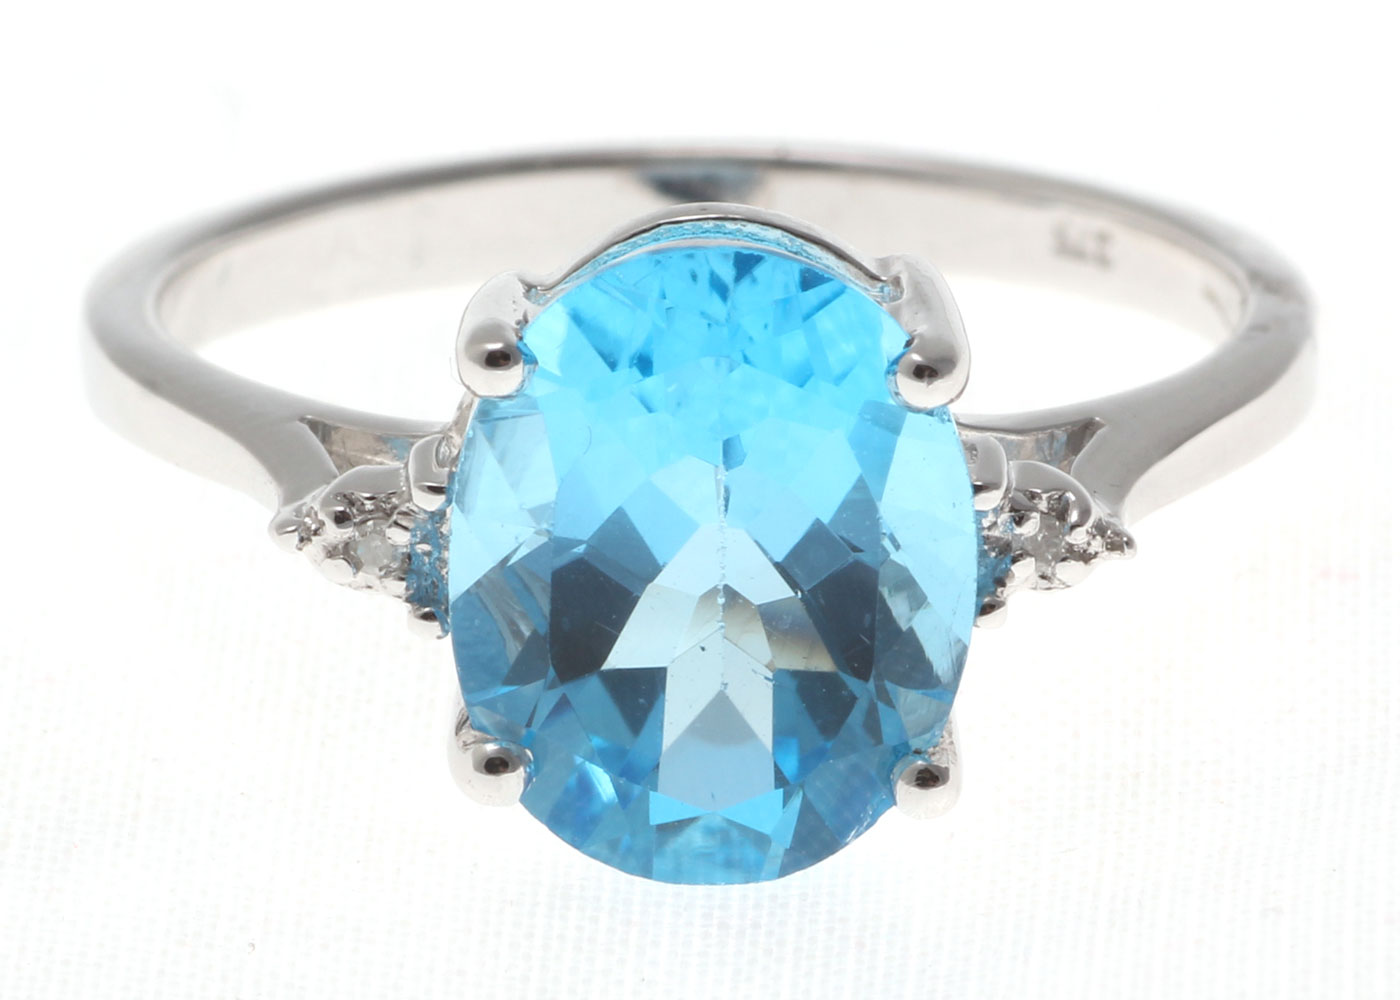 9ct White Gold Diamond And Blue Topaz Ring - Image 5 of 6